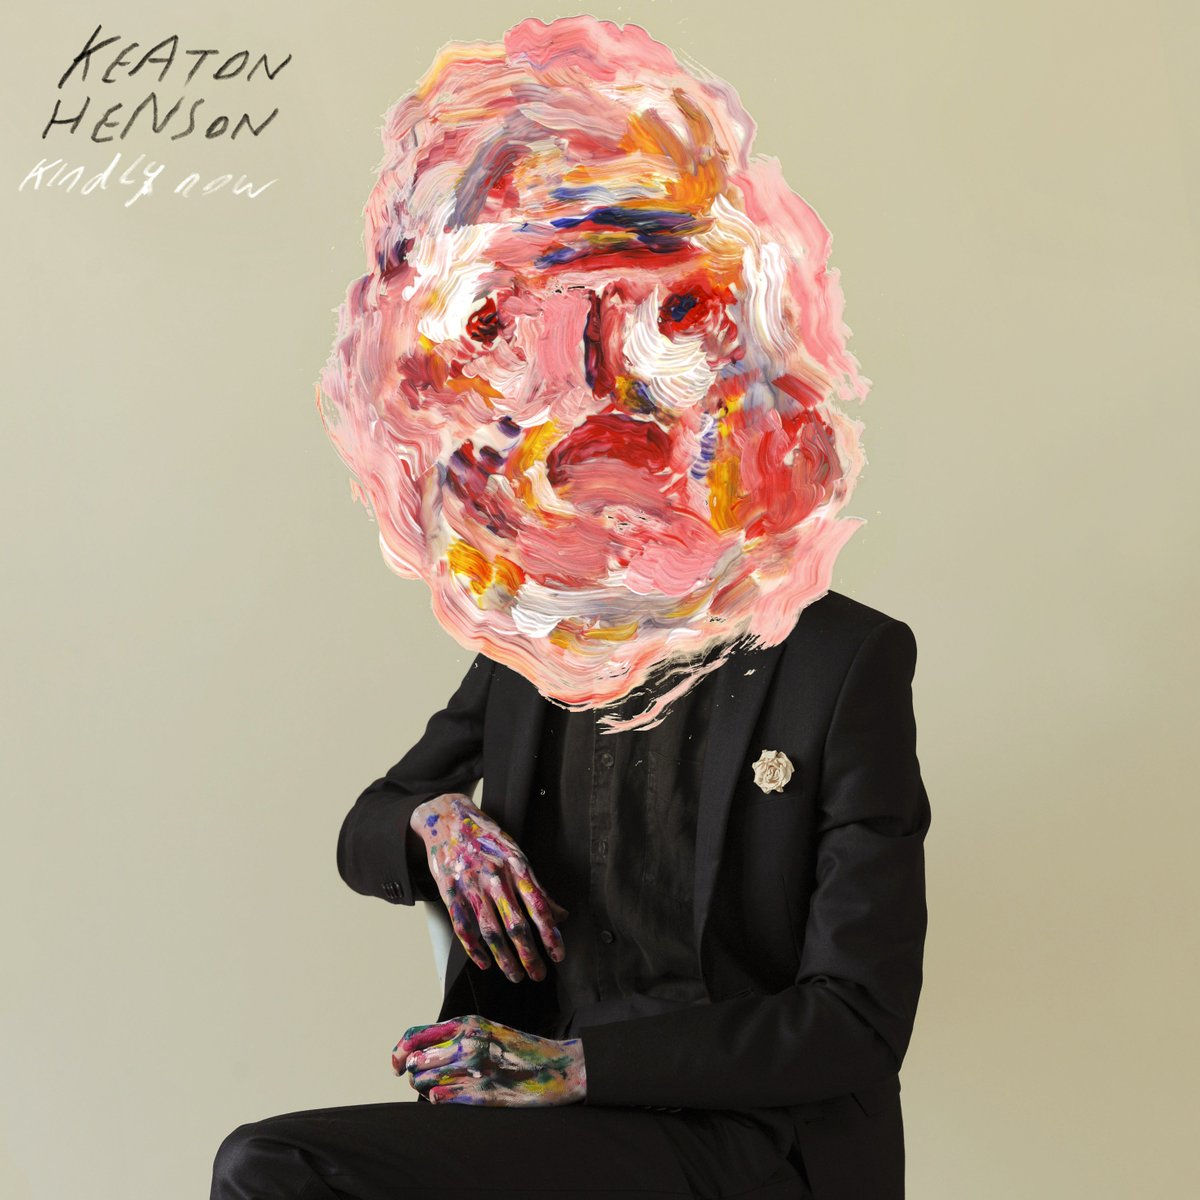 Excited to announce we'll be releasing the new #KeatonHenson album #KindlyNow